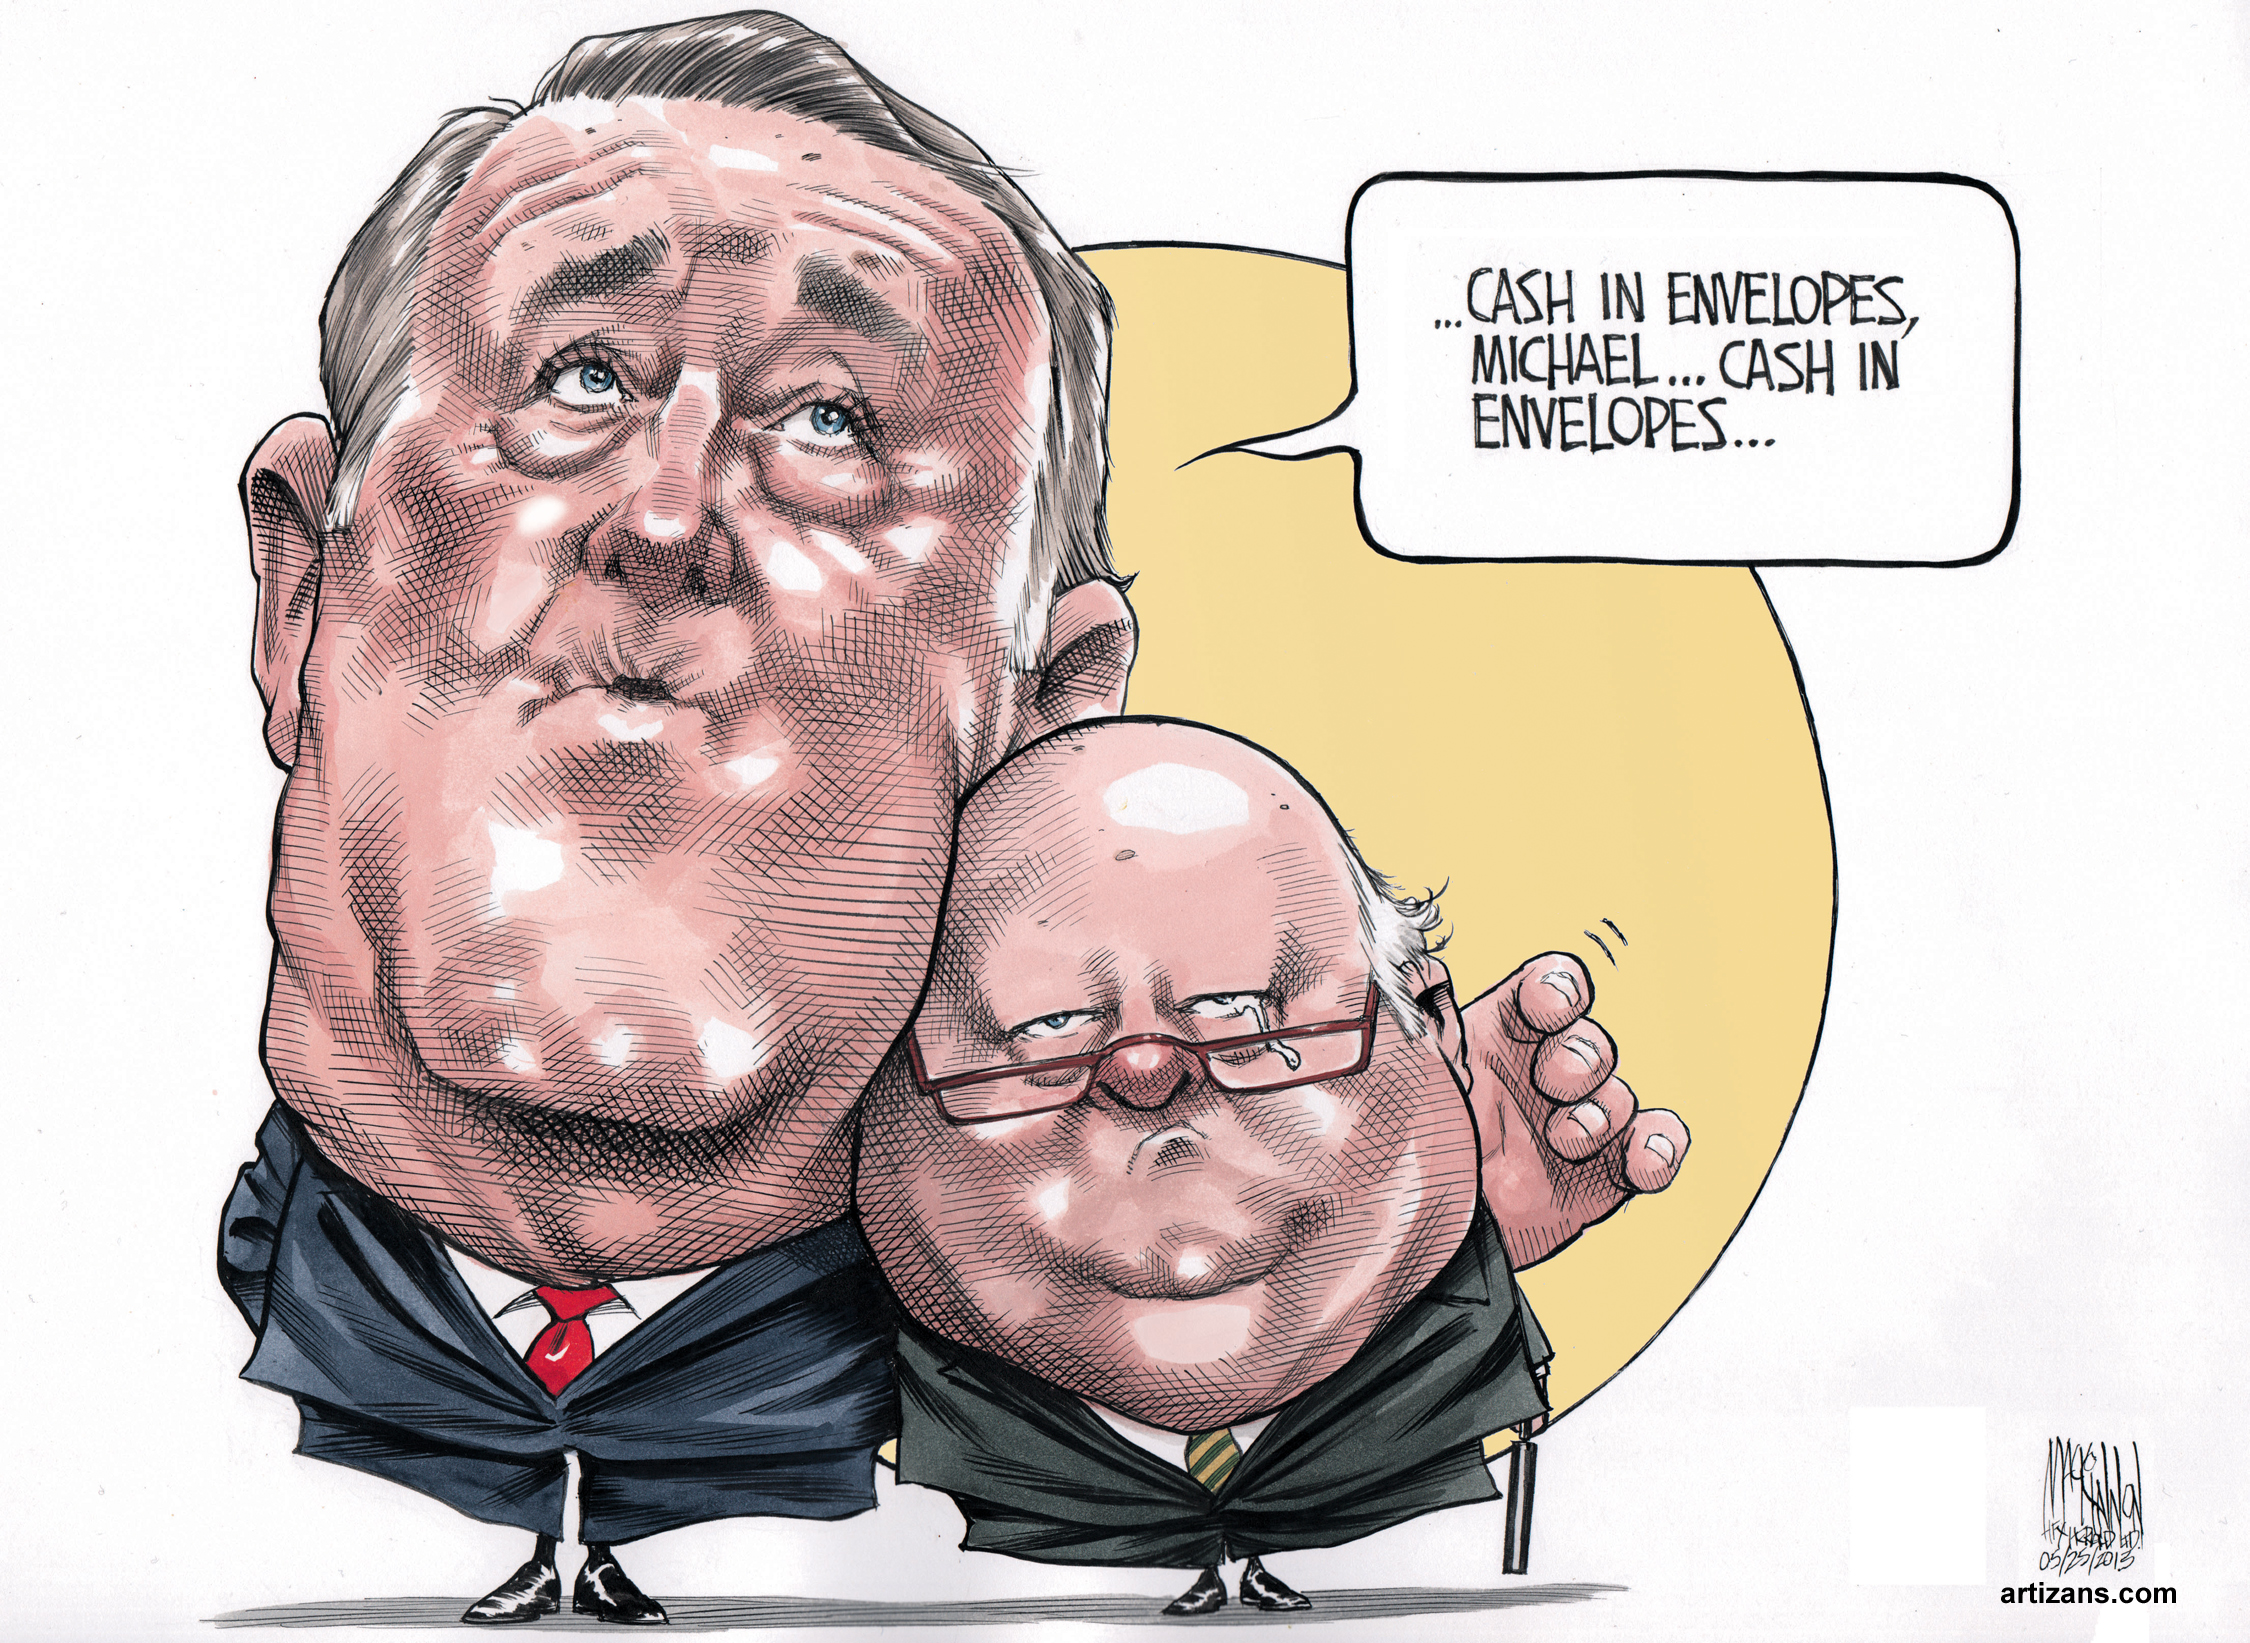 2013 06 07 Mulroney to duffy cash in envelopes only